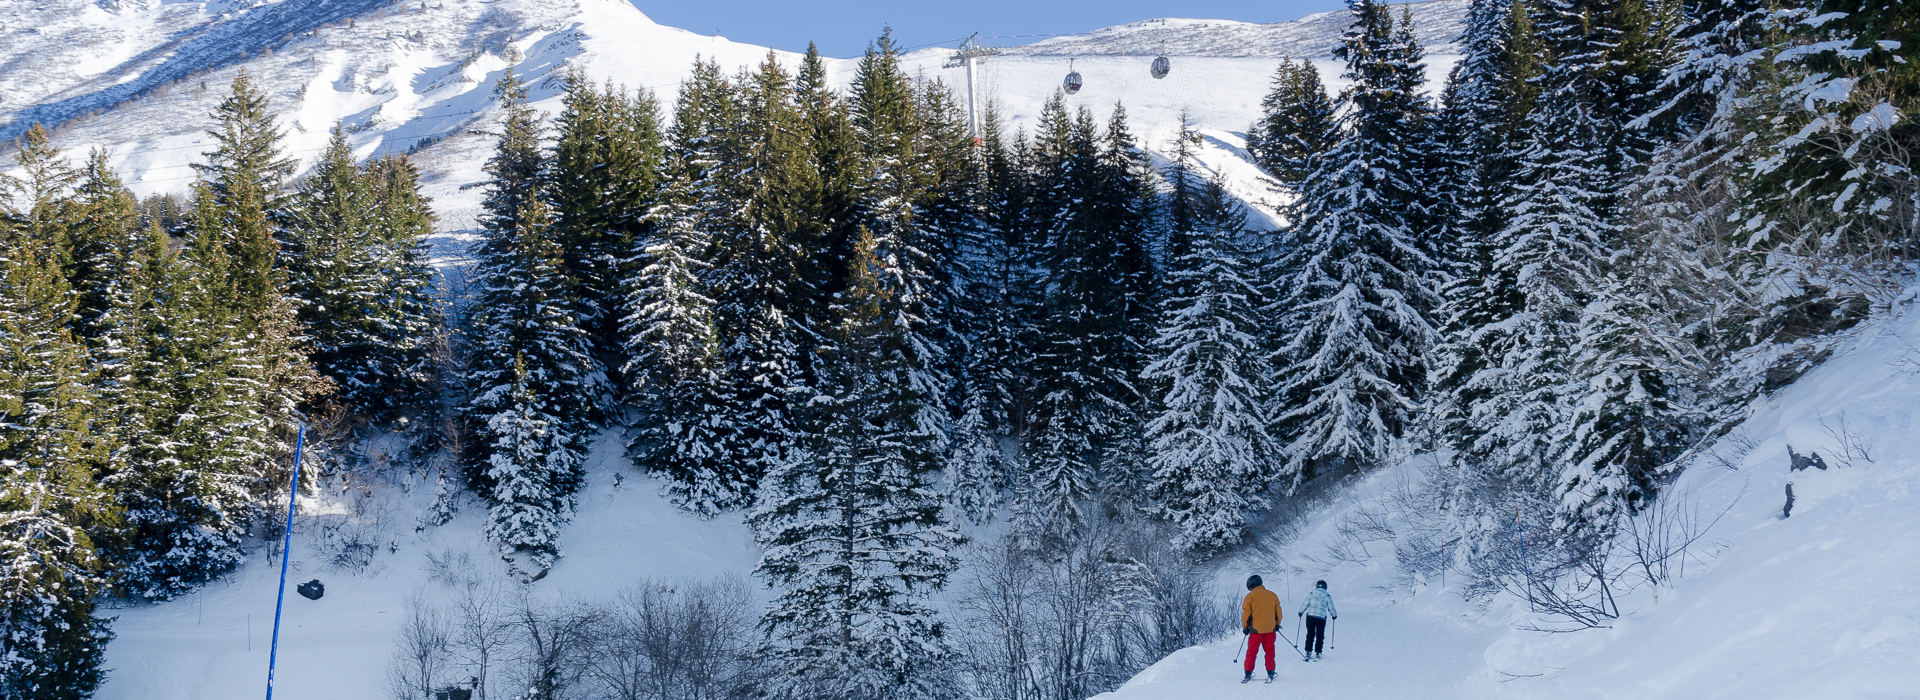 Two skiers on forest trail piste at Valmorel, Savoie, French Alps.